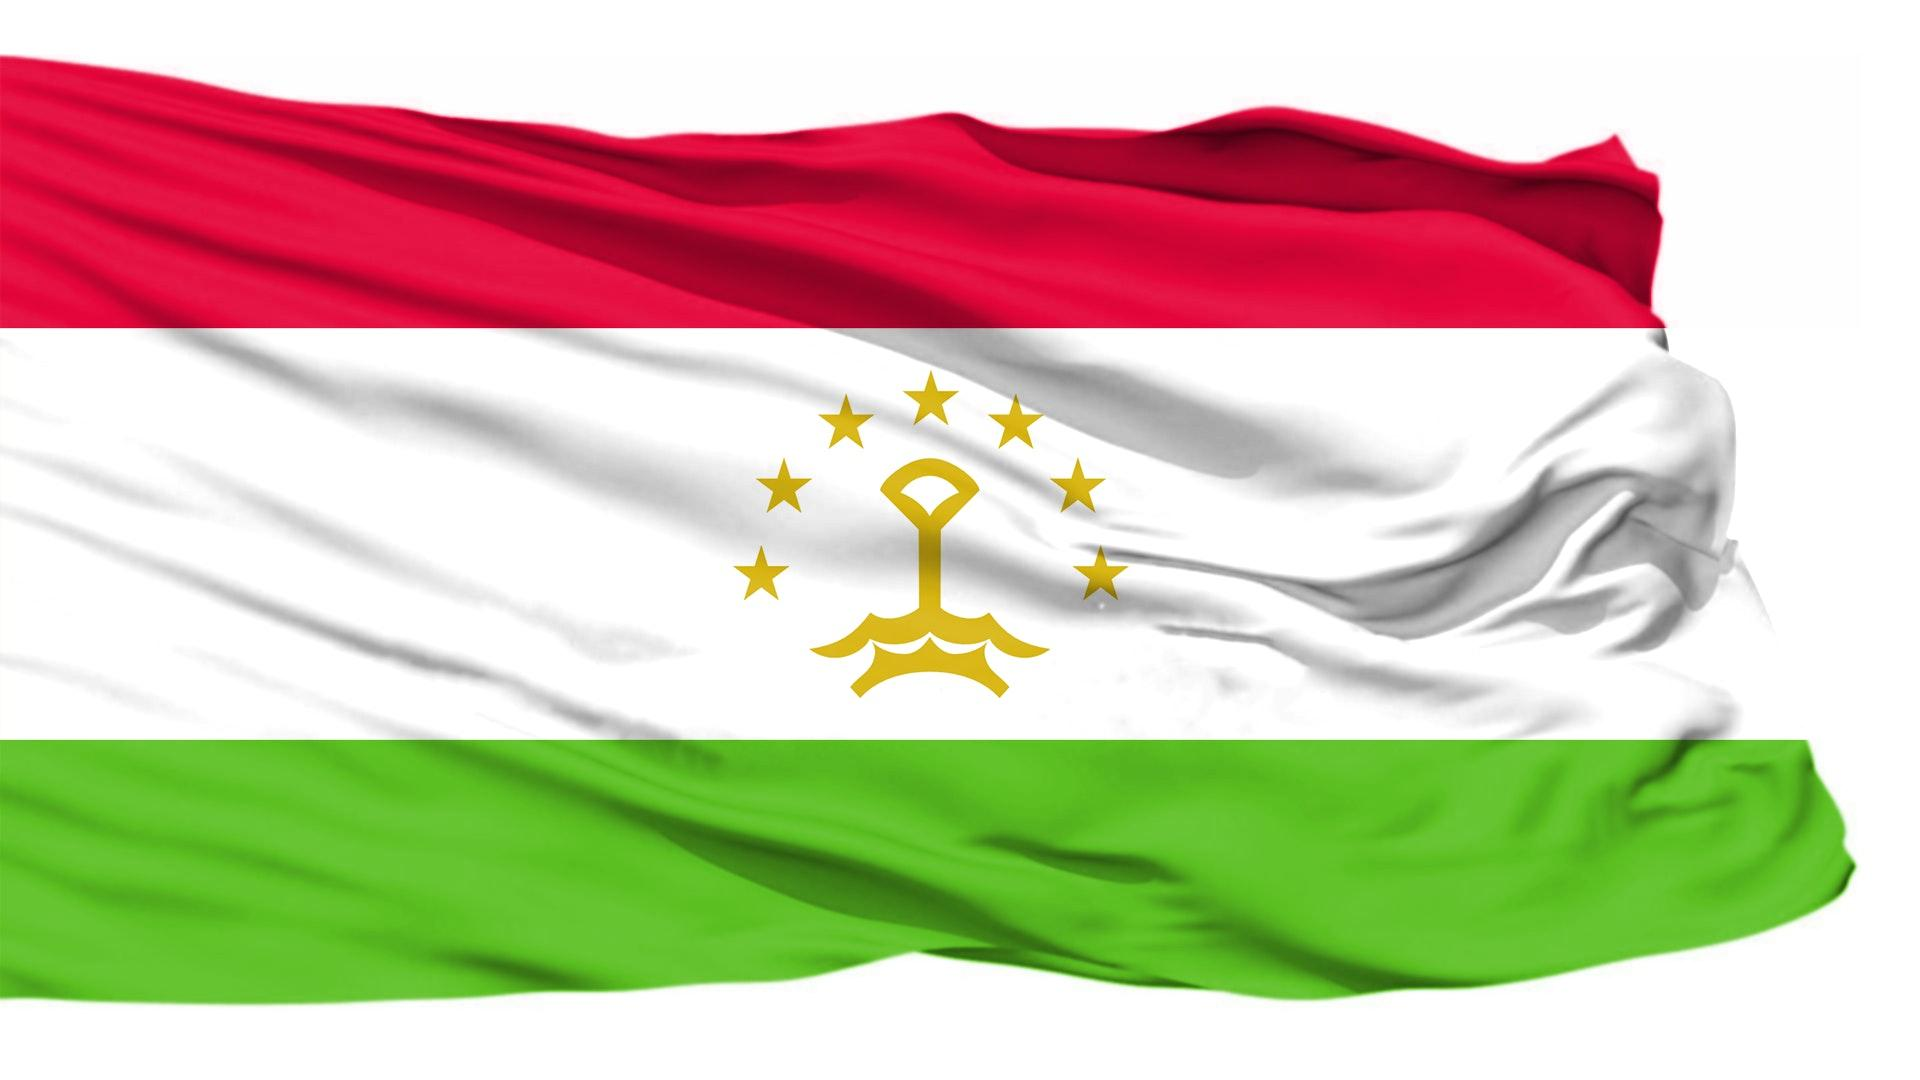 Free stock photo of flag, Tajikistan flag